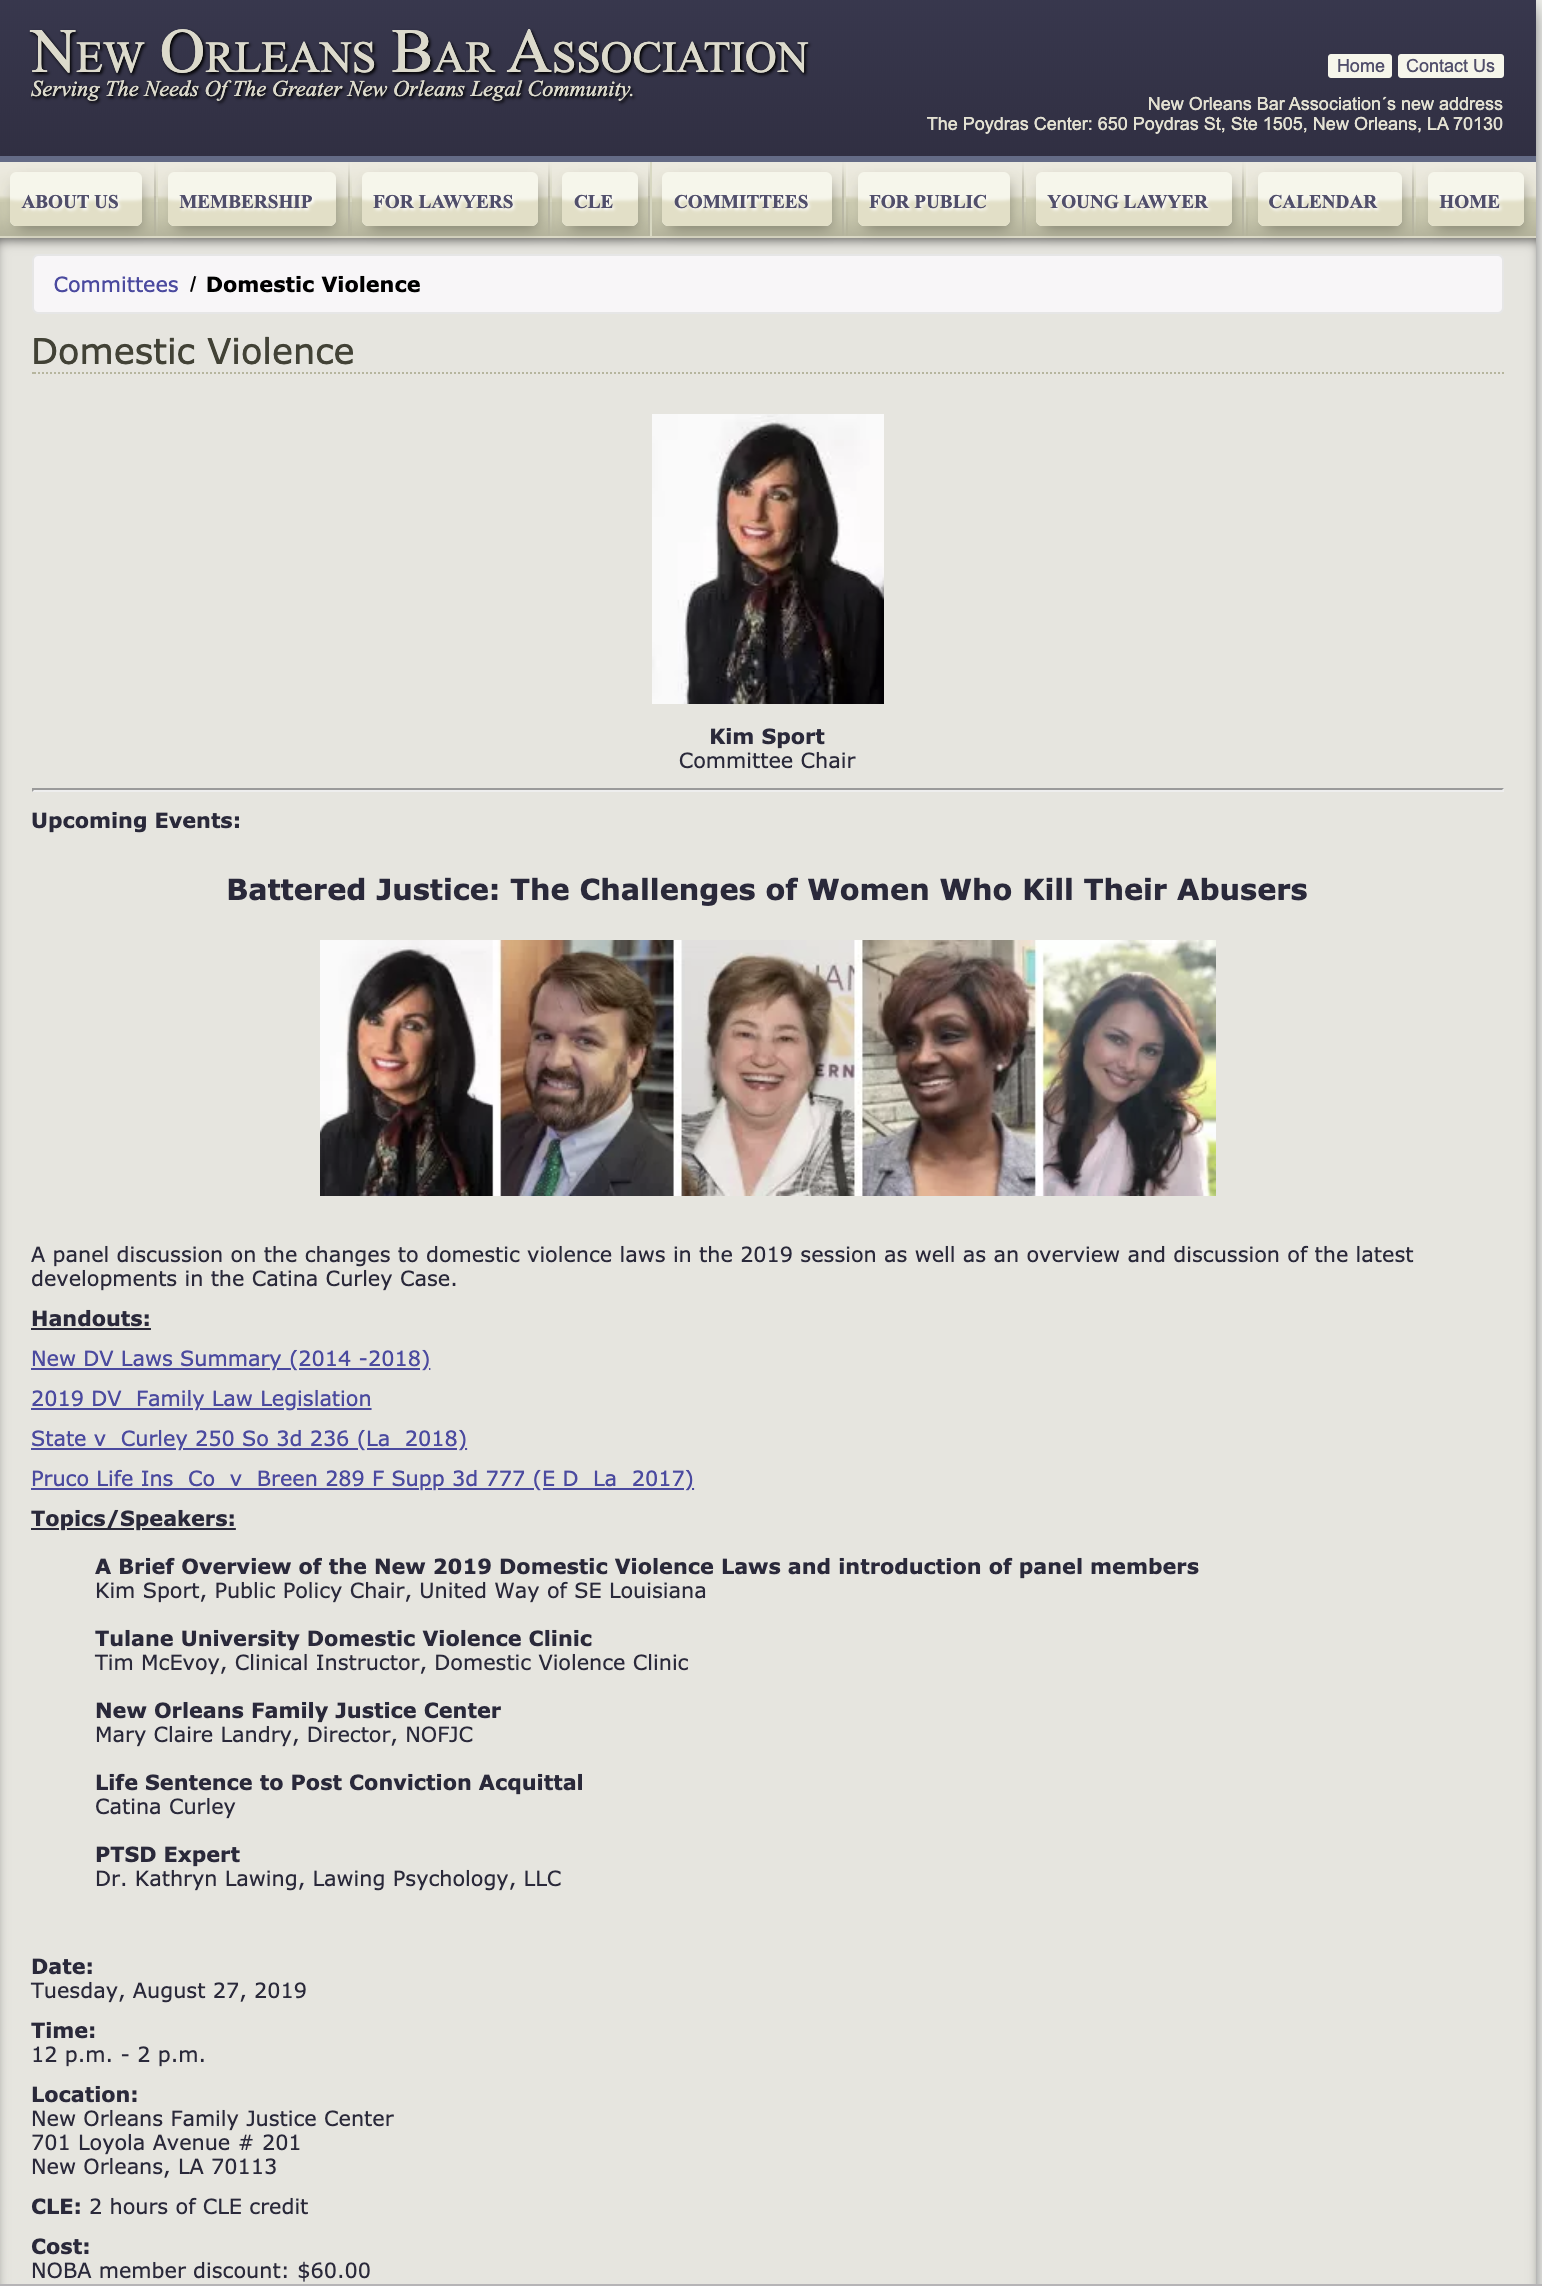 New Orleans Bar Association - Dr. Lawing spoke on a panel of attorneys and experts on Battered Justice: The Challenges of Women Who Kill Their Abusershttps://www.neworleansbar.org/committees/domestic-violence